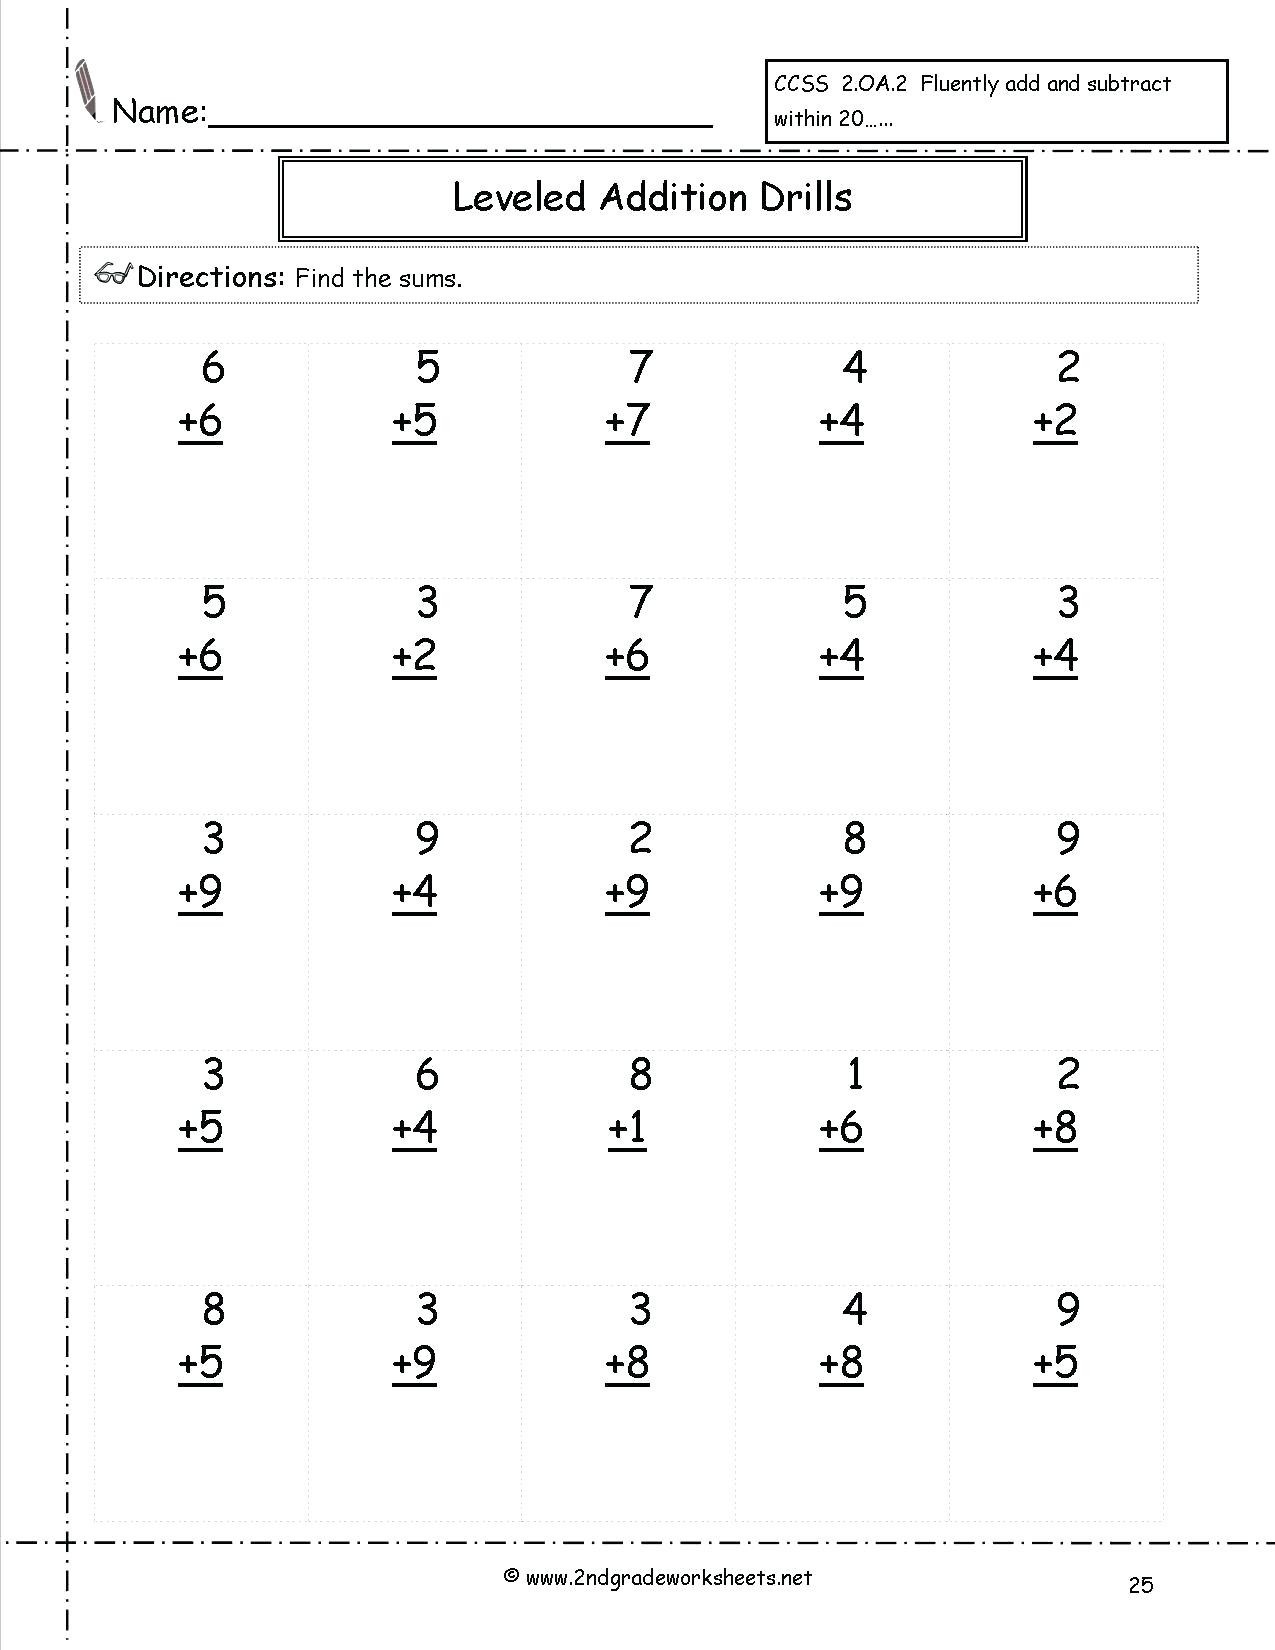 Third Grade Fraction Worksheets 3 Free Math Worksheets Third Grade 3 Counting Money Money In